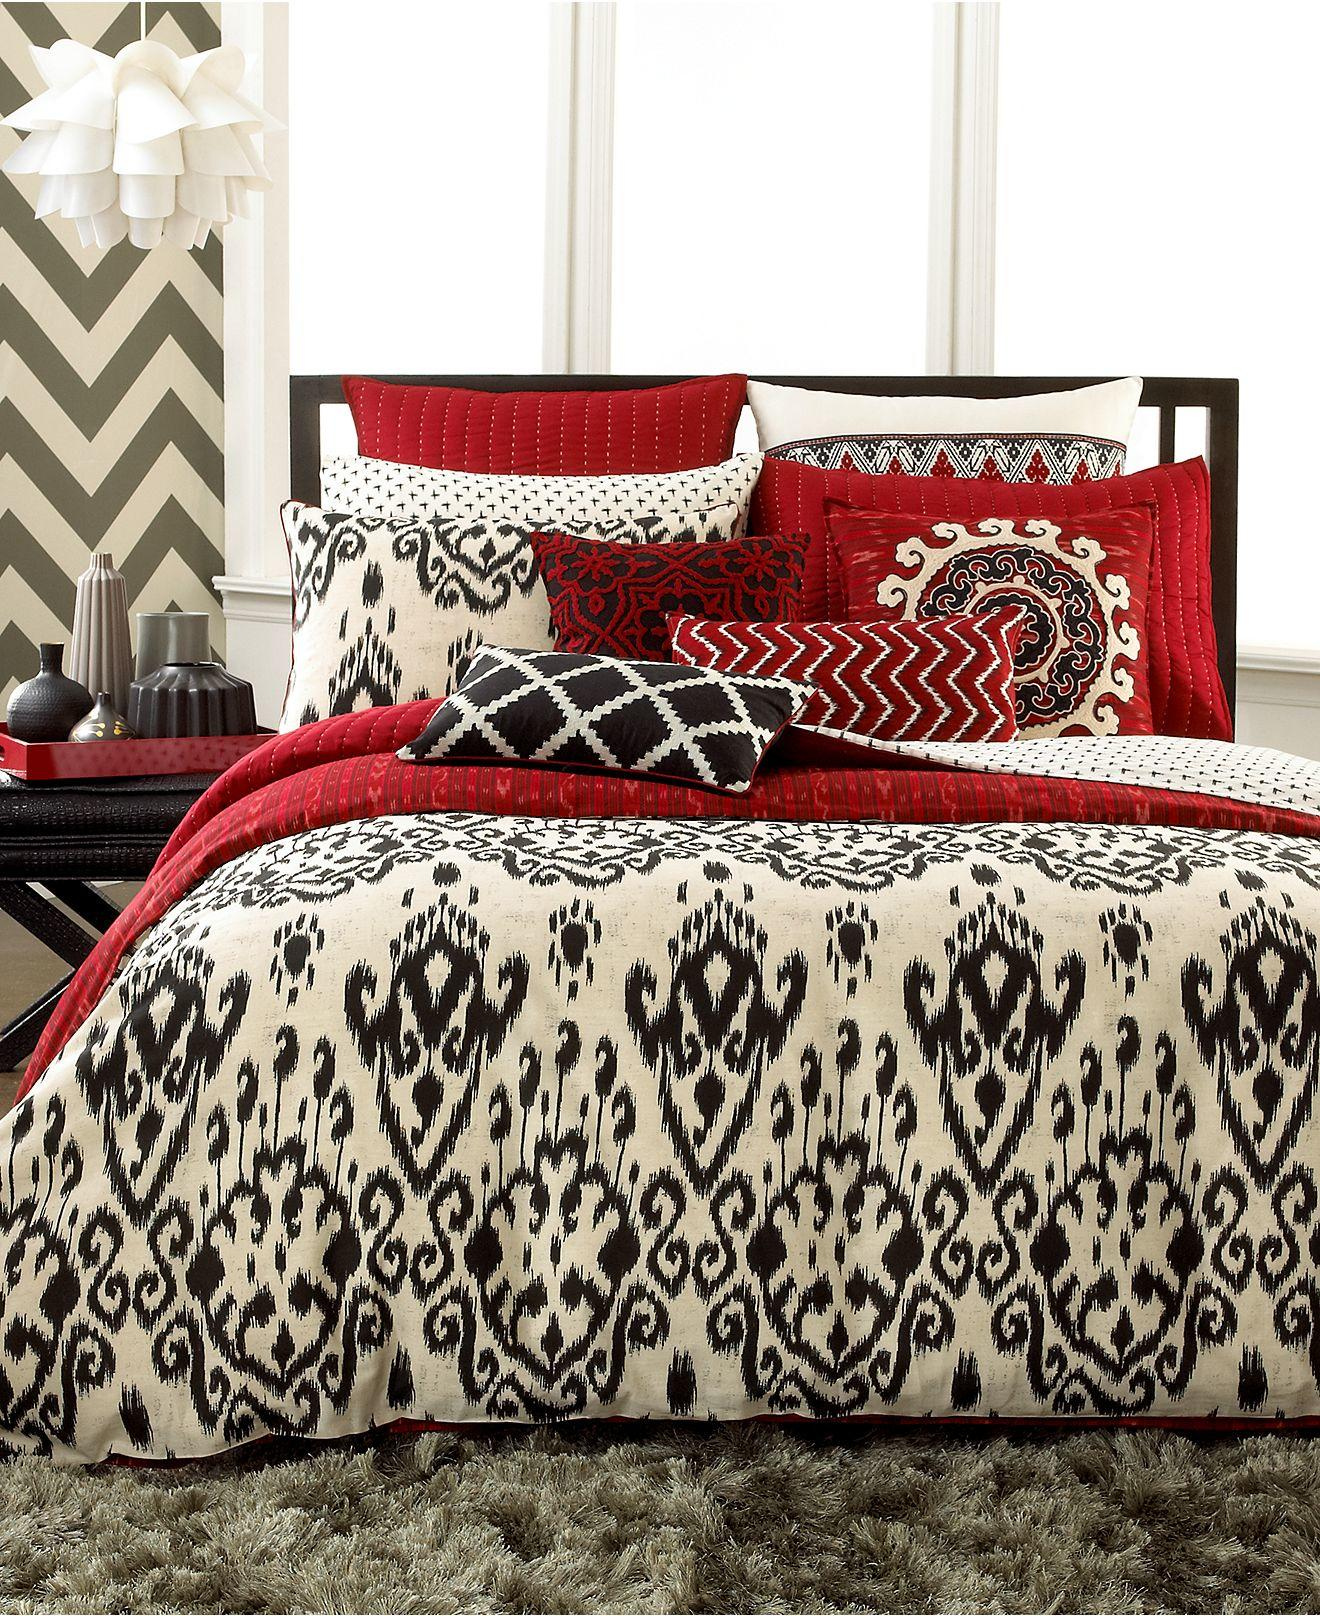 Inc international concepts ikat bedding from macys for International collection